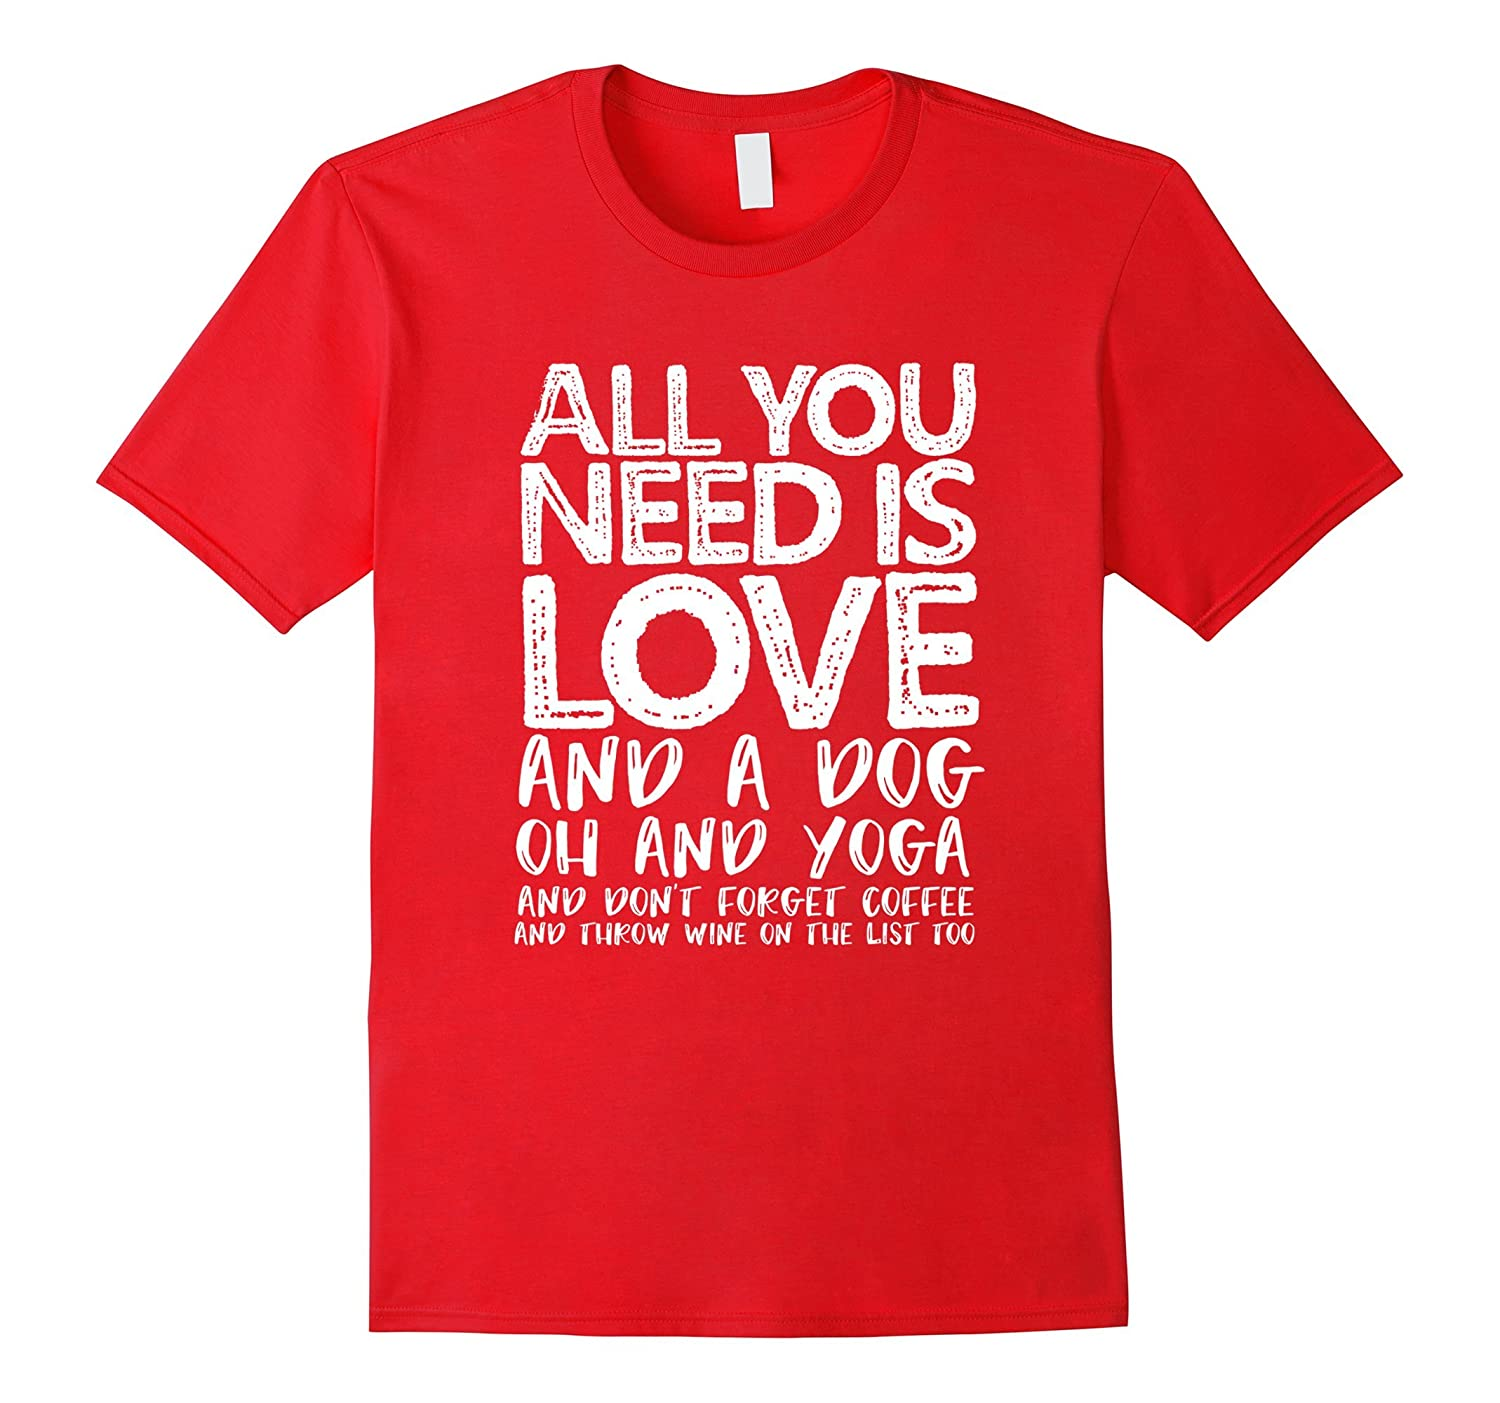 All you need is love and a dog, yoga, coffee and wine-BN